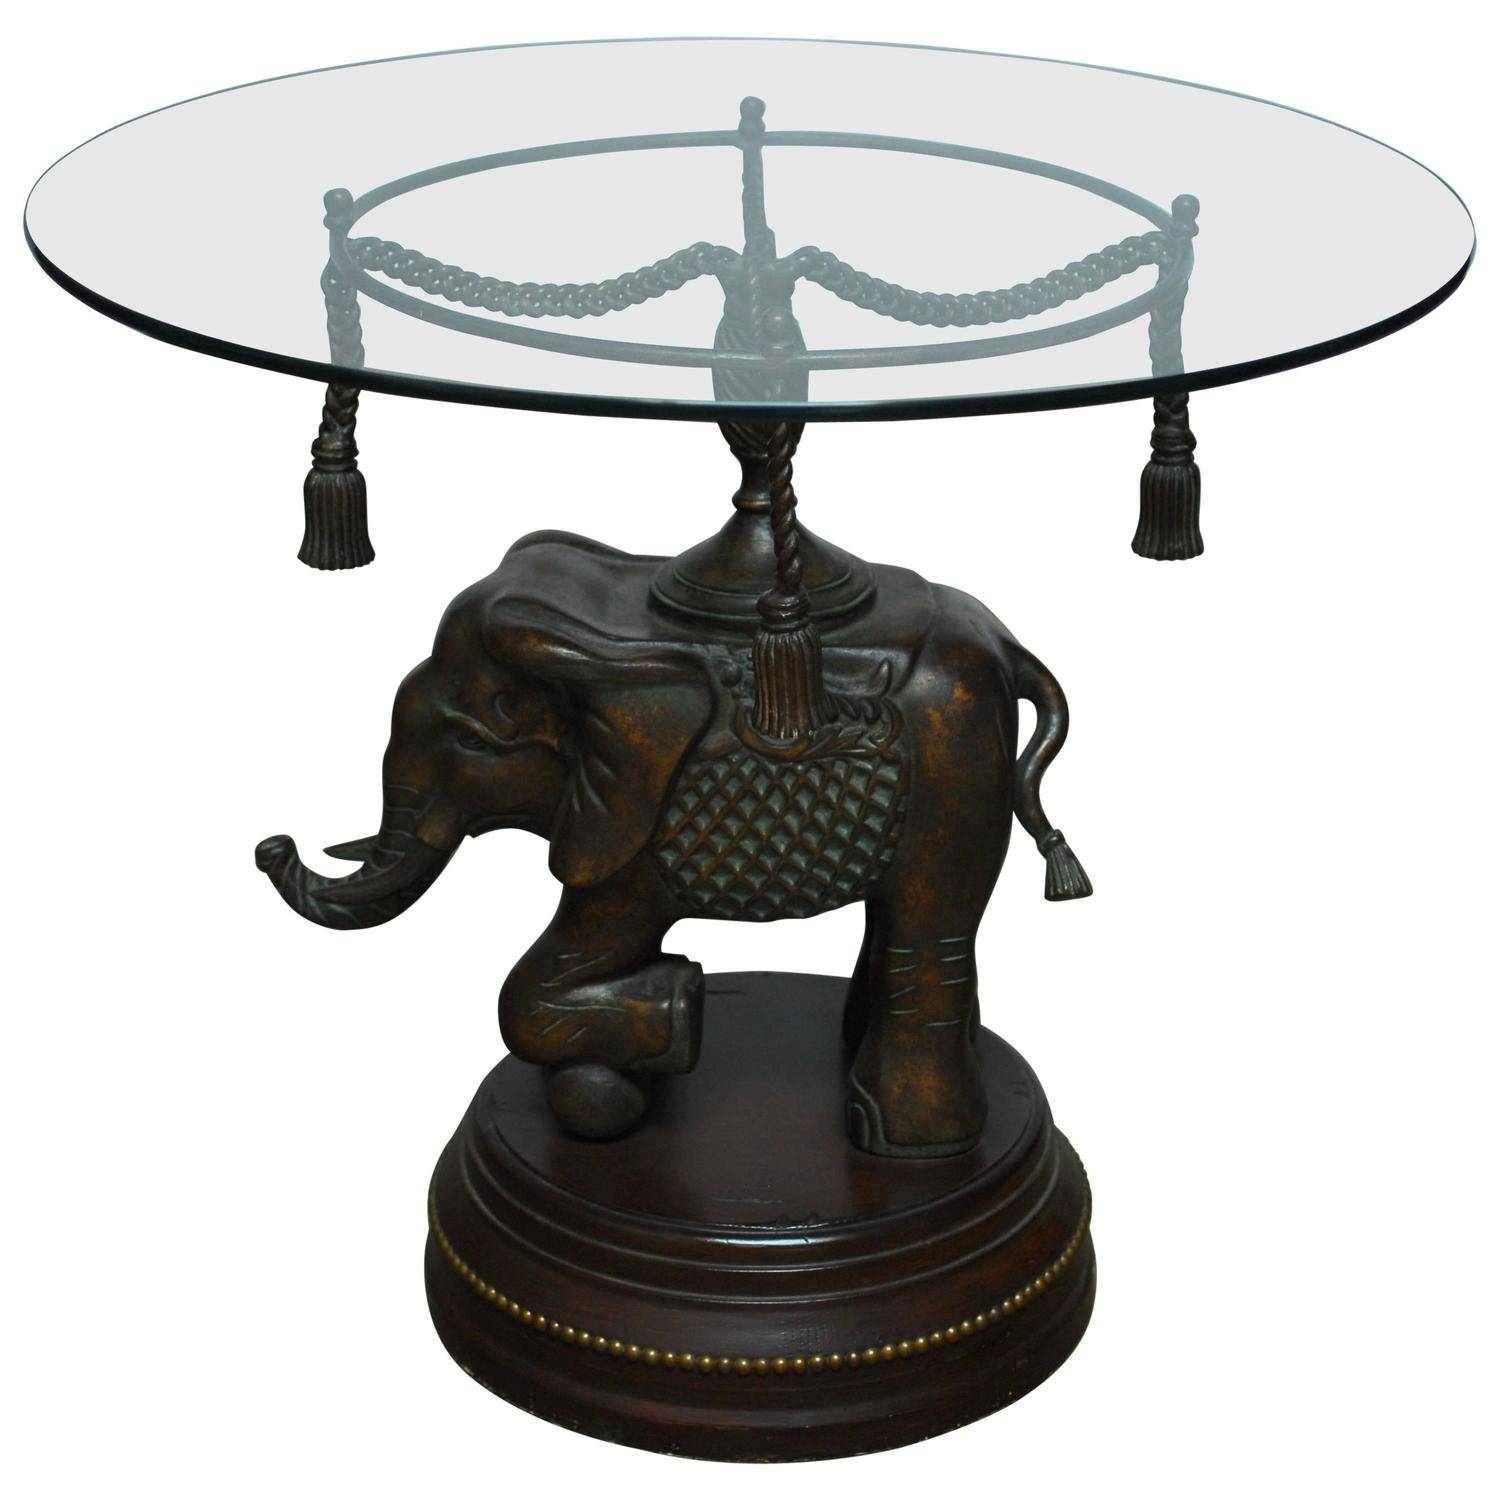 Bronze Elephant Pedestal Side Table For Sale At 1Stdibs pertaining to Elephant Coffee Tables (Image 7 of 30)